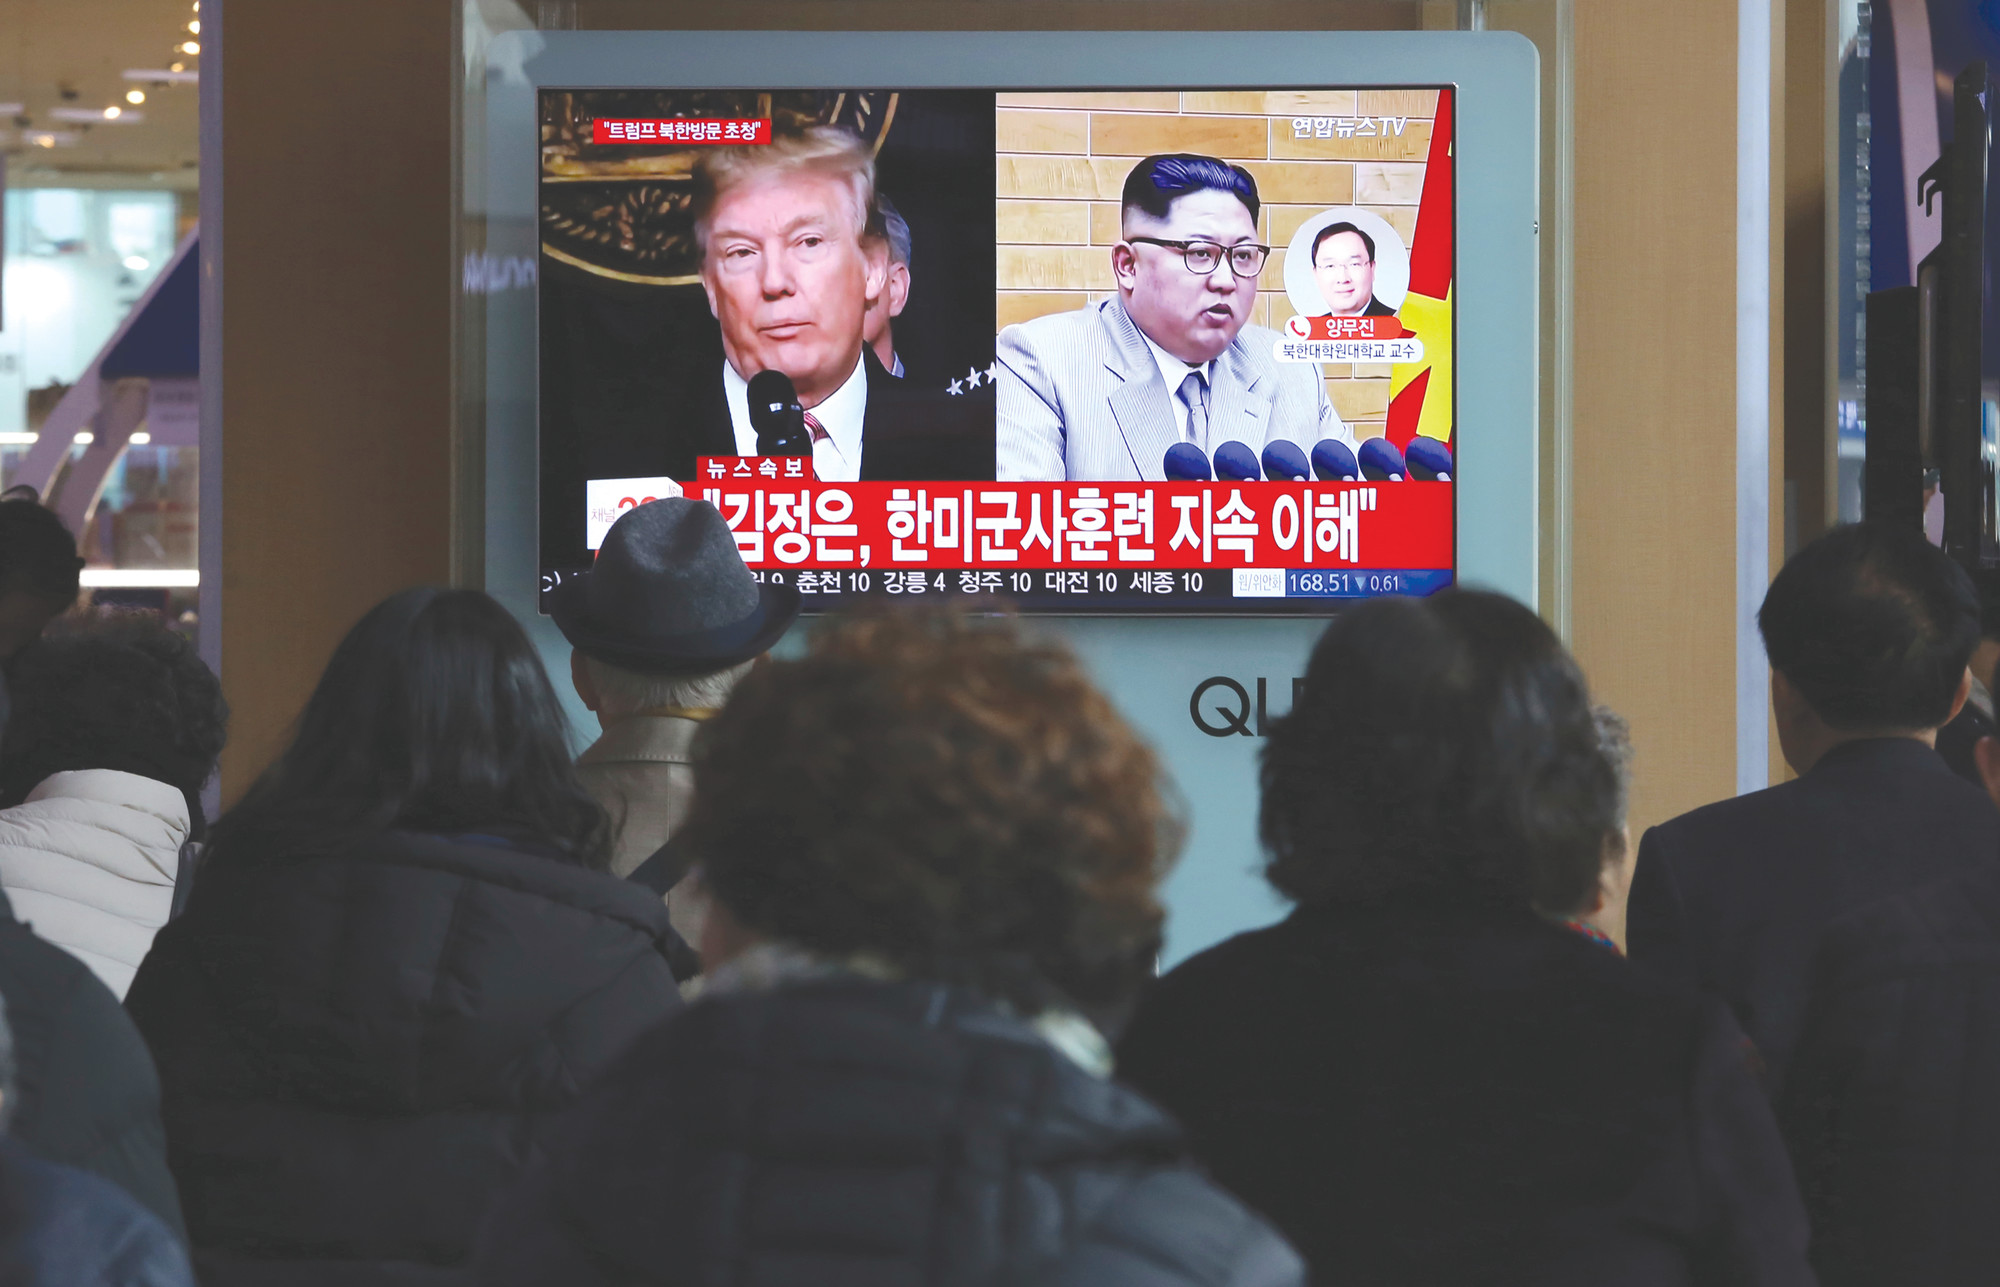 People watch a TV screen showing North Korean leader Kim Jong Un and U.S. President Donald Trump, left, at the Seoul Railway Station in Seoul, South Korea, on Friday. After months of trading insults and threats of nuclear annihilation, Trump agreed to meet with North Korean leader Kim Jung Un by the end of May to negotiate an end to Pyongyang's nuclear weapons program, South Korean and U.S. officials said Thursday.